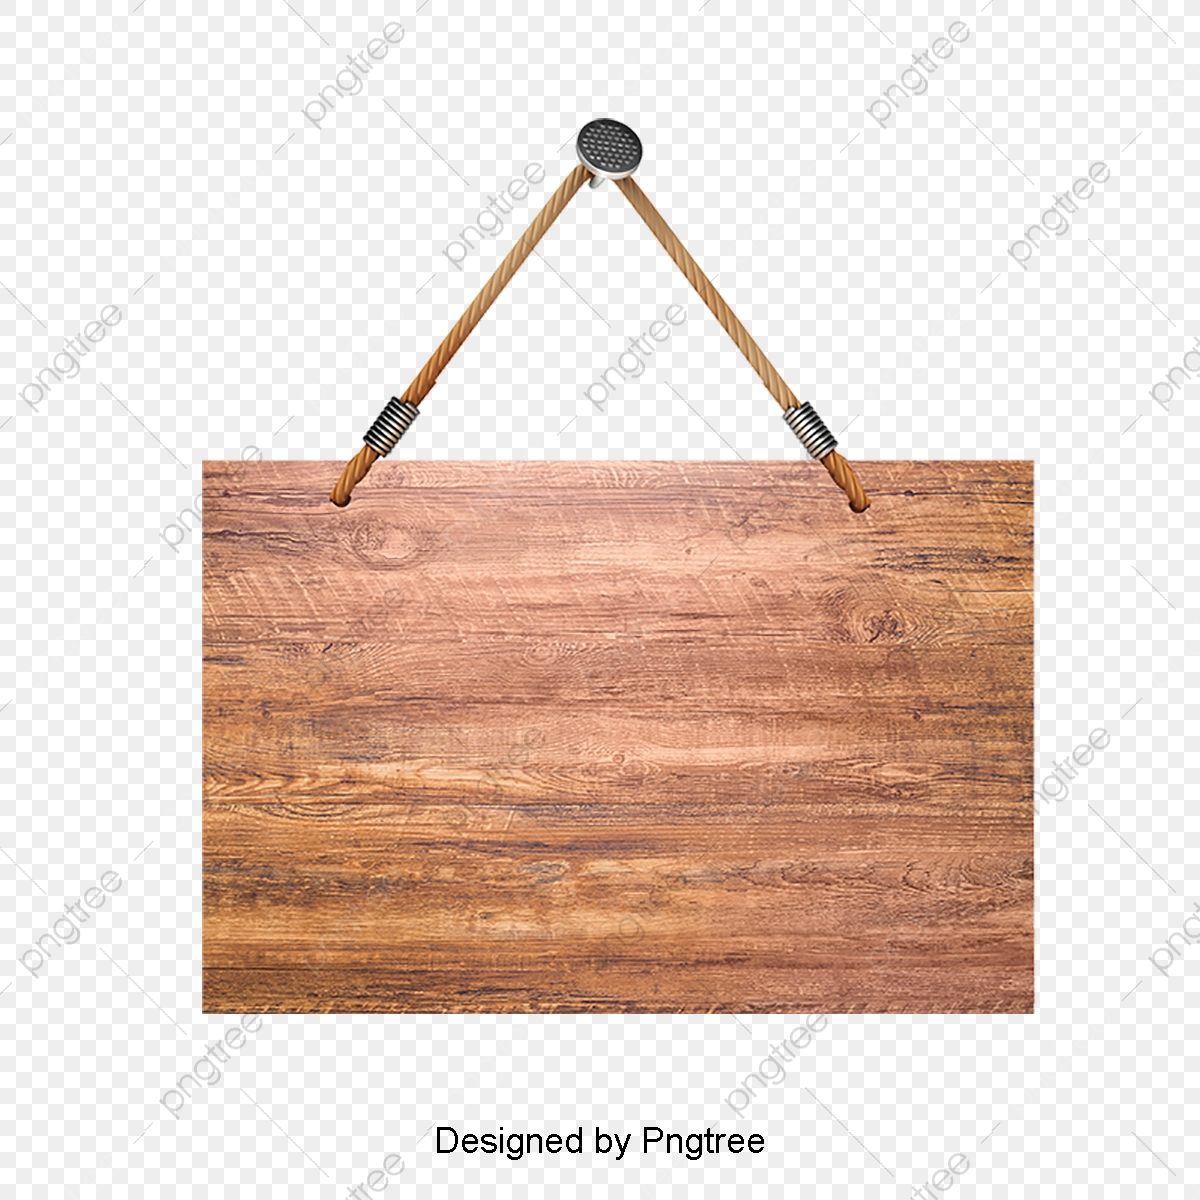 Wooden Sign Hanging, Sign Clipart, Mupai, Billboard PNG Transparent.